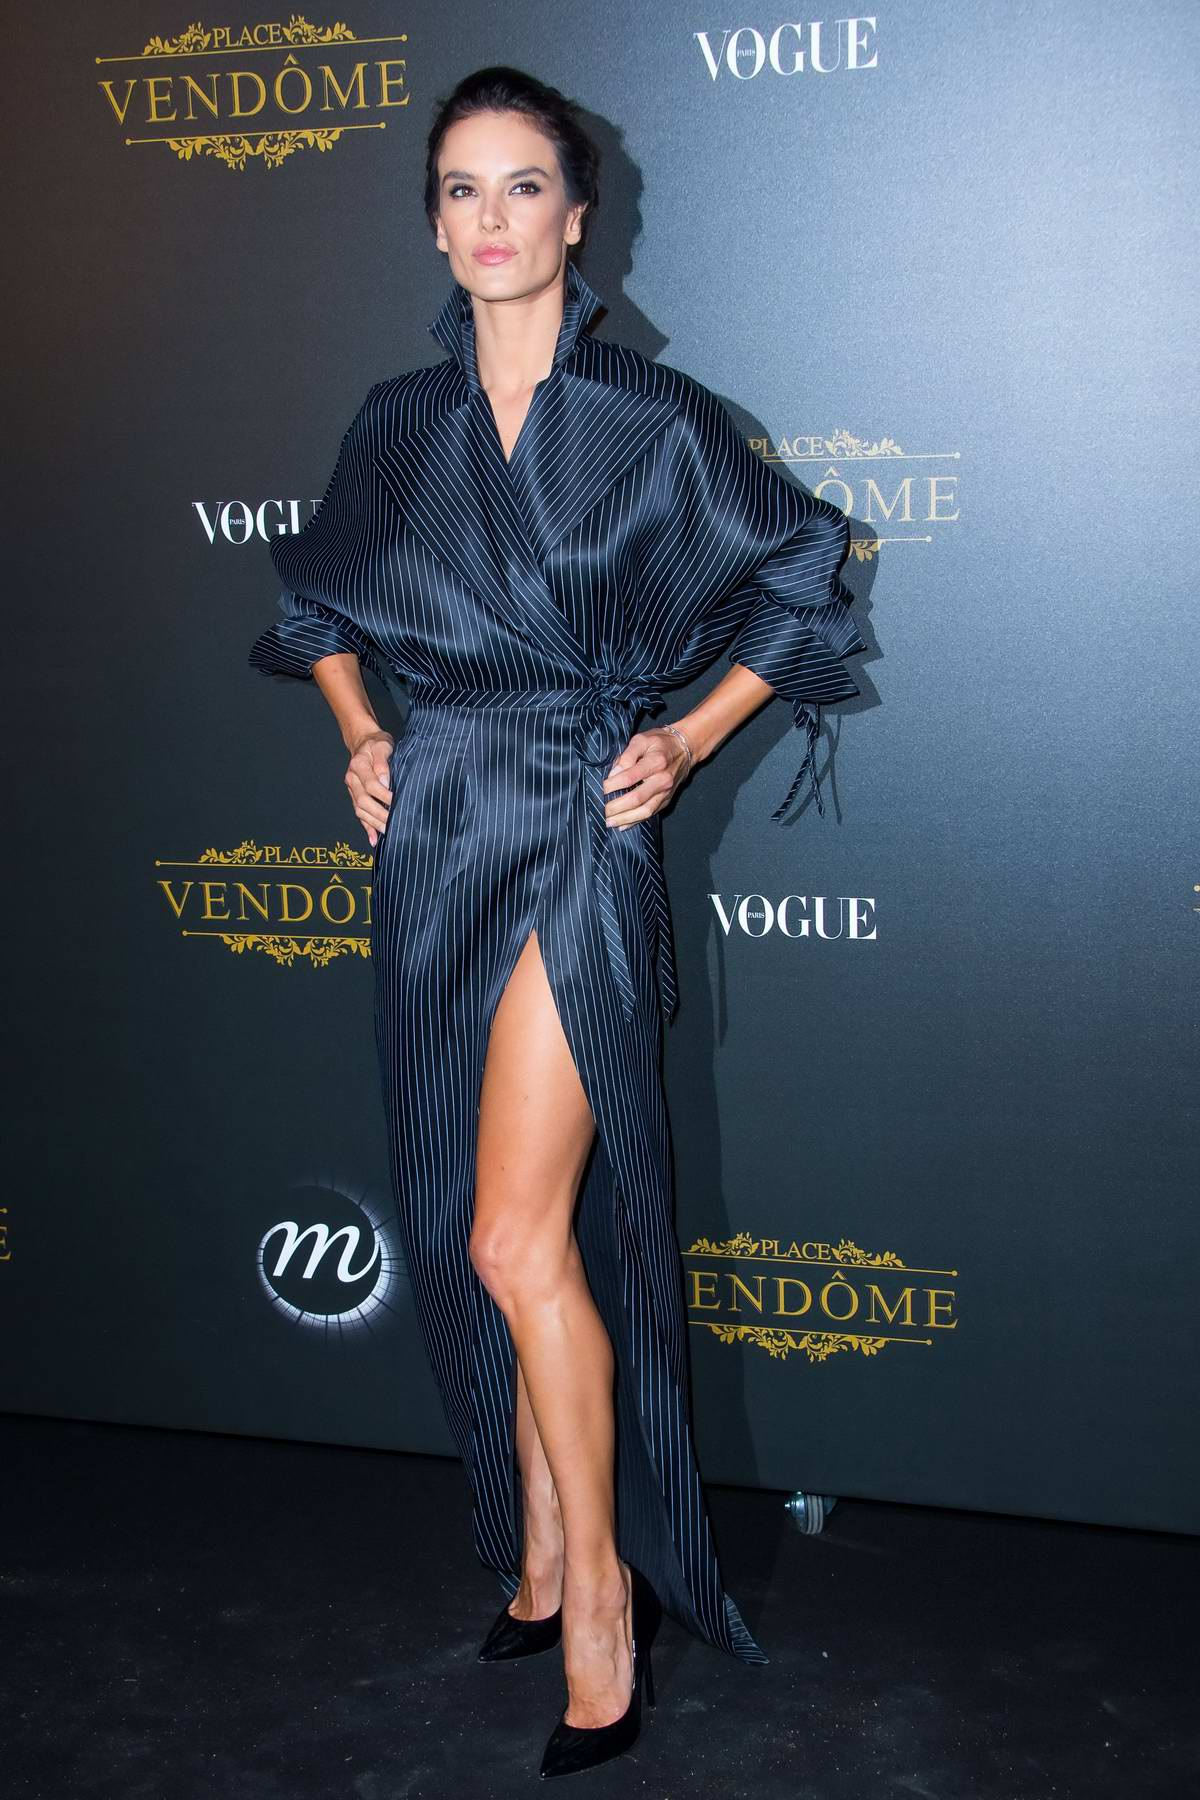 Alessandra Ambrosio at Vogue X Irving Penn Party during Paris Fashion Week, France